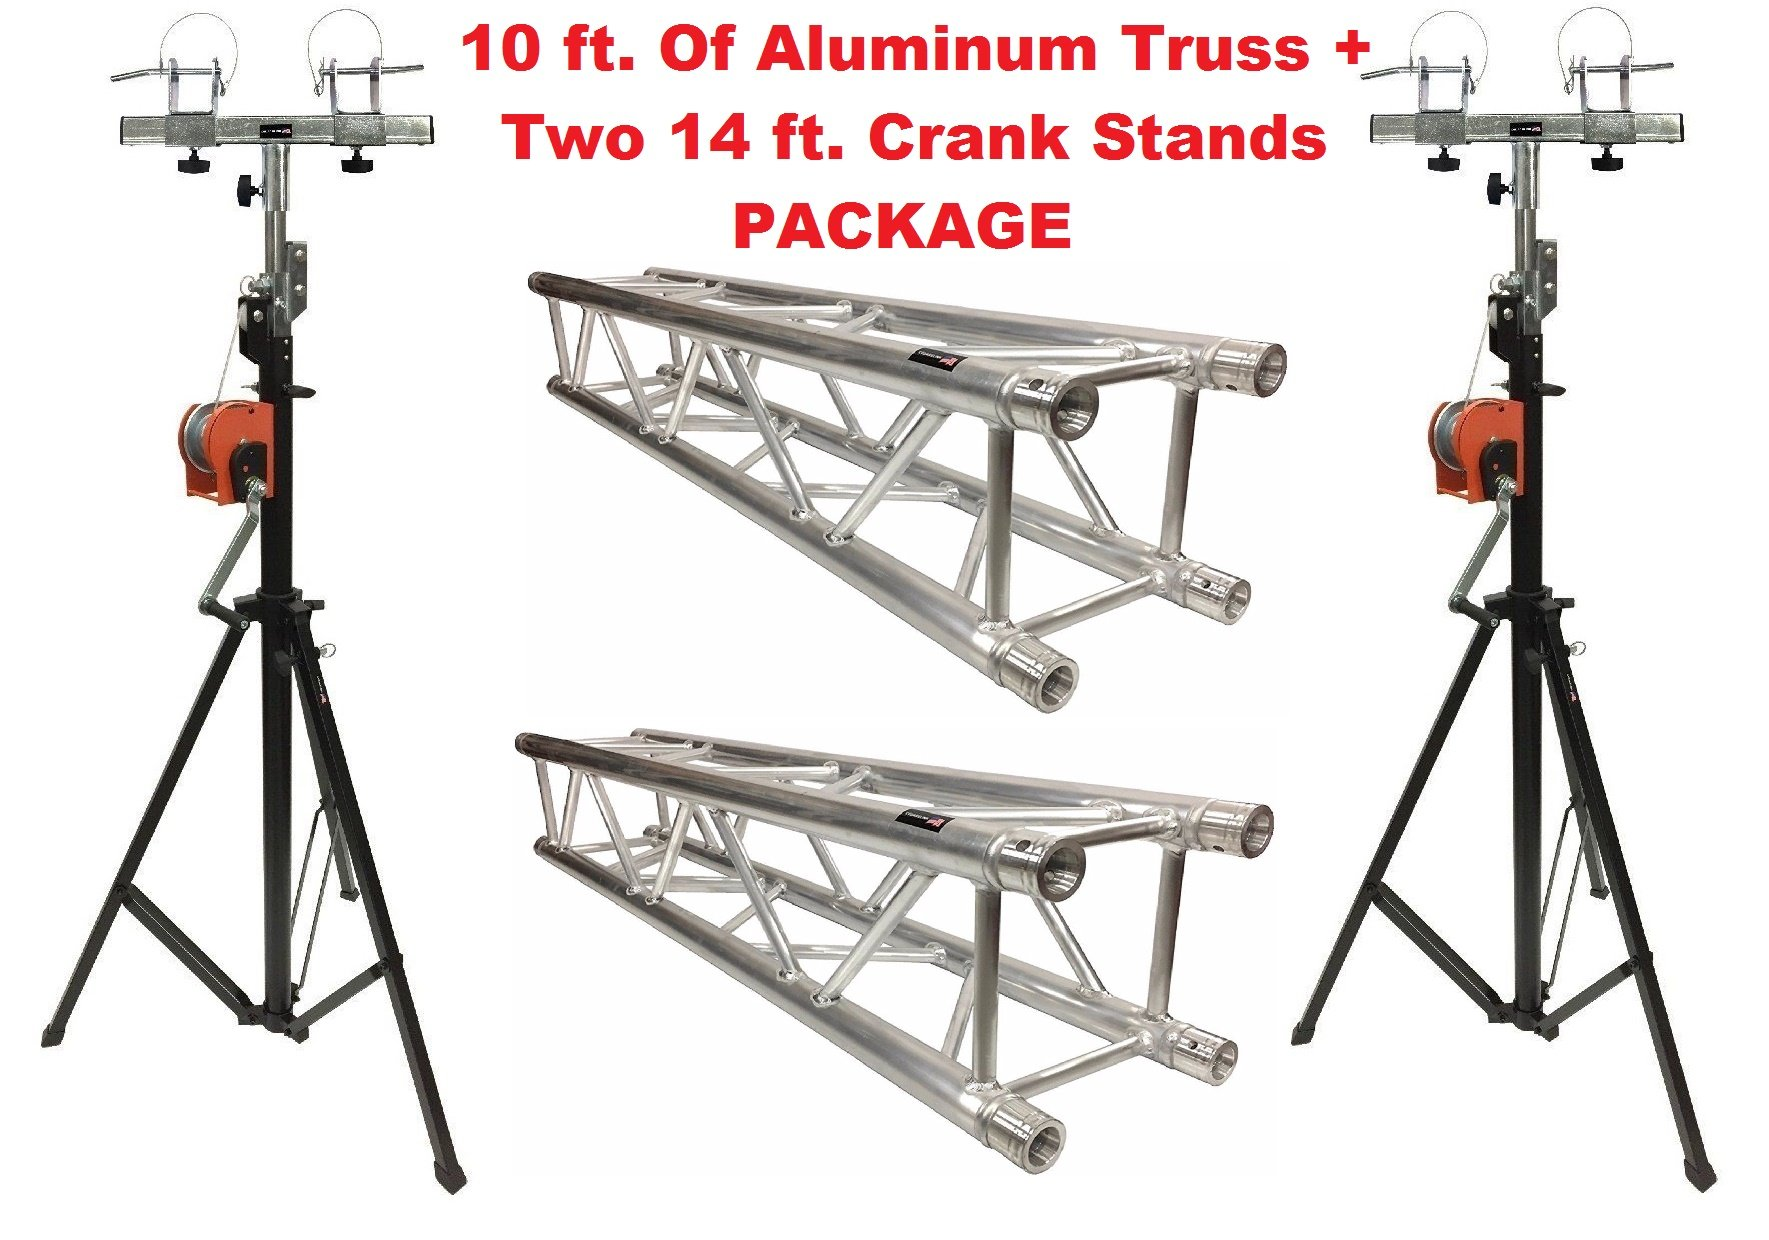 Aluminum Truss Portable 10' Lighting Truss Package + Two 14 ft. Crank Up Stands